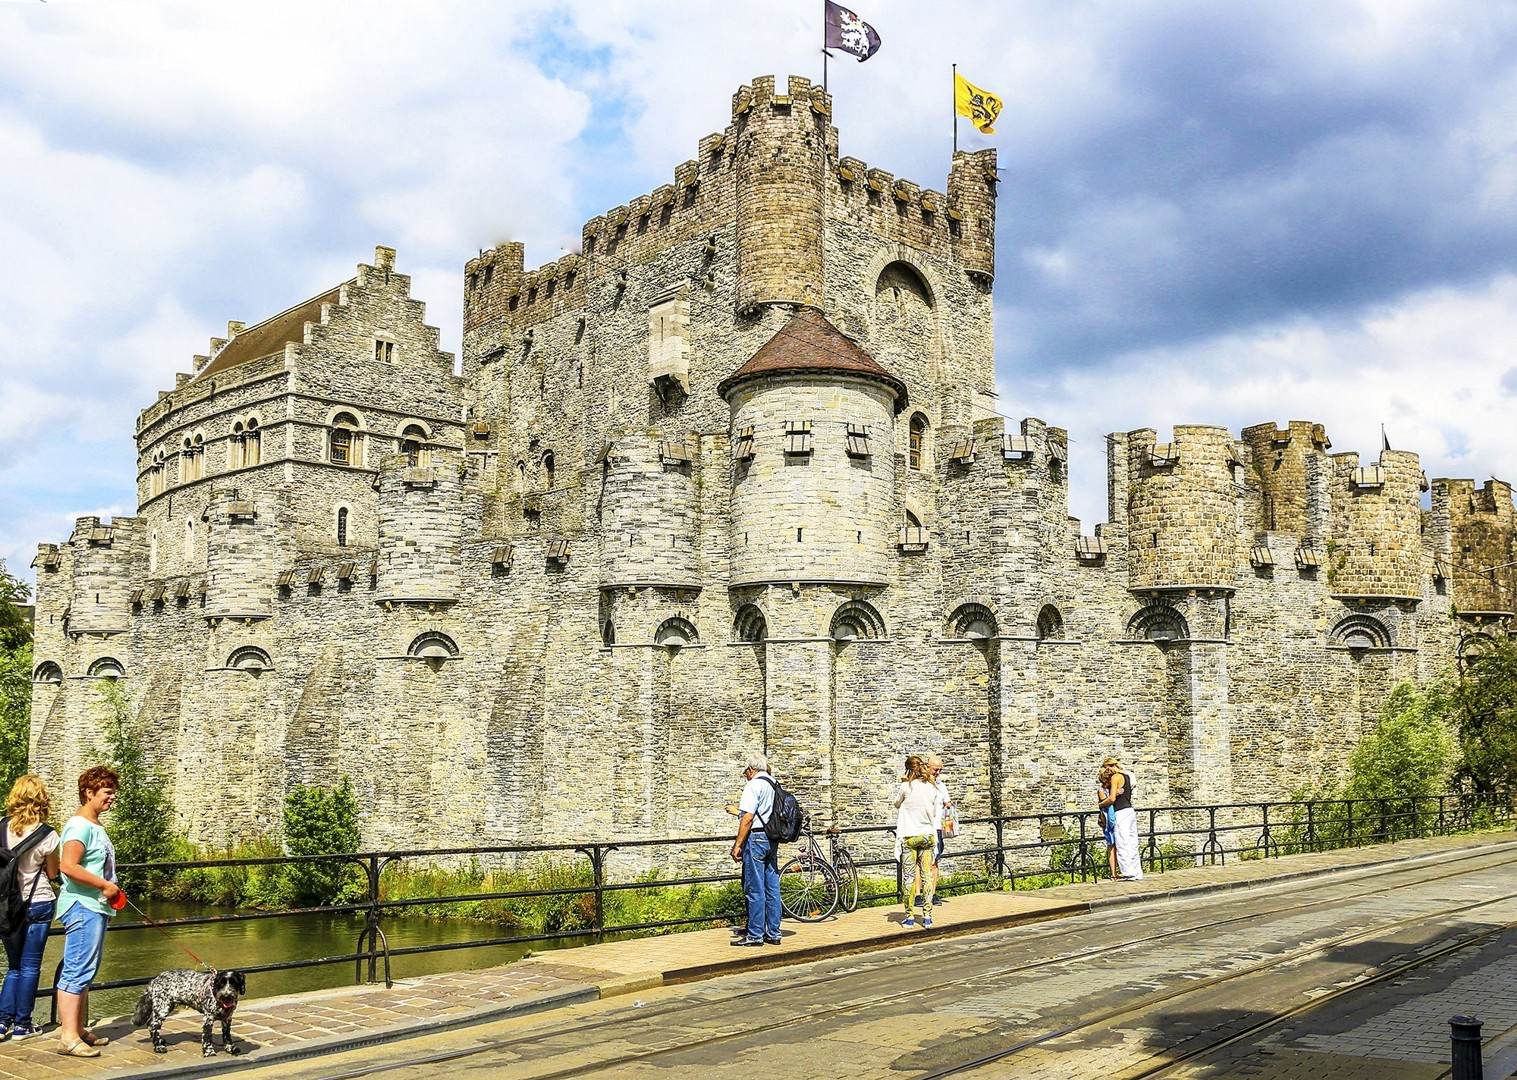 gravensteen-castle-ghent-belgium-historical-sites-bruges-to-amsterdam-tour-on-bikes.jpg - Holland and Belgium - Amsterdam to Bruges - Leisure Cycling